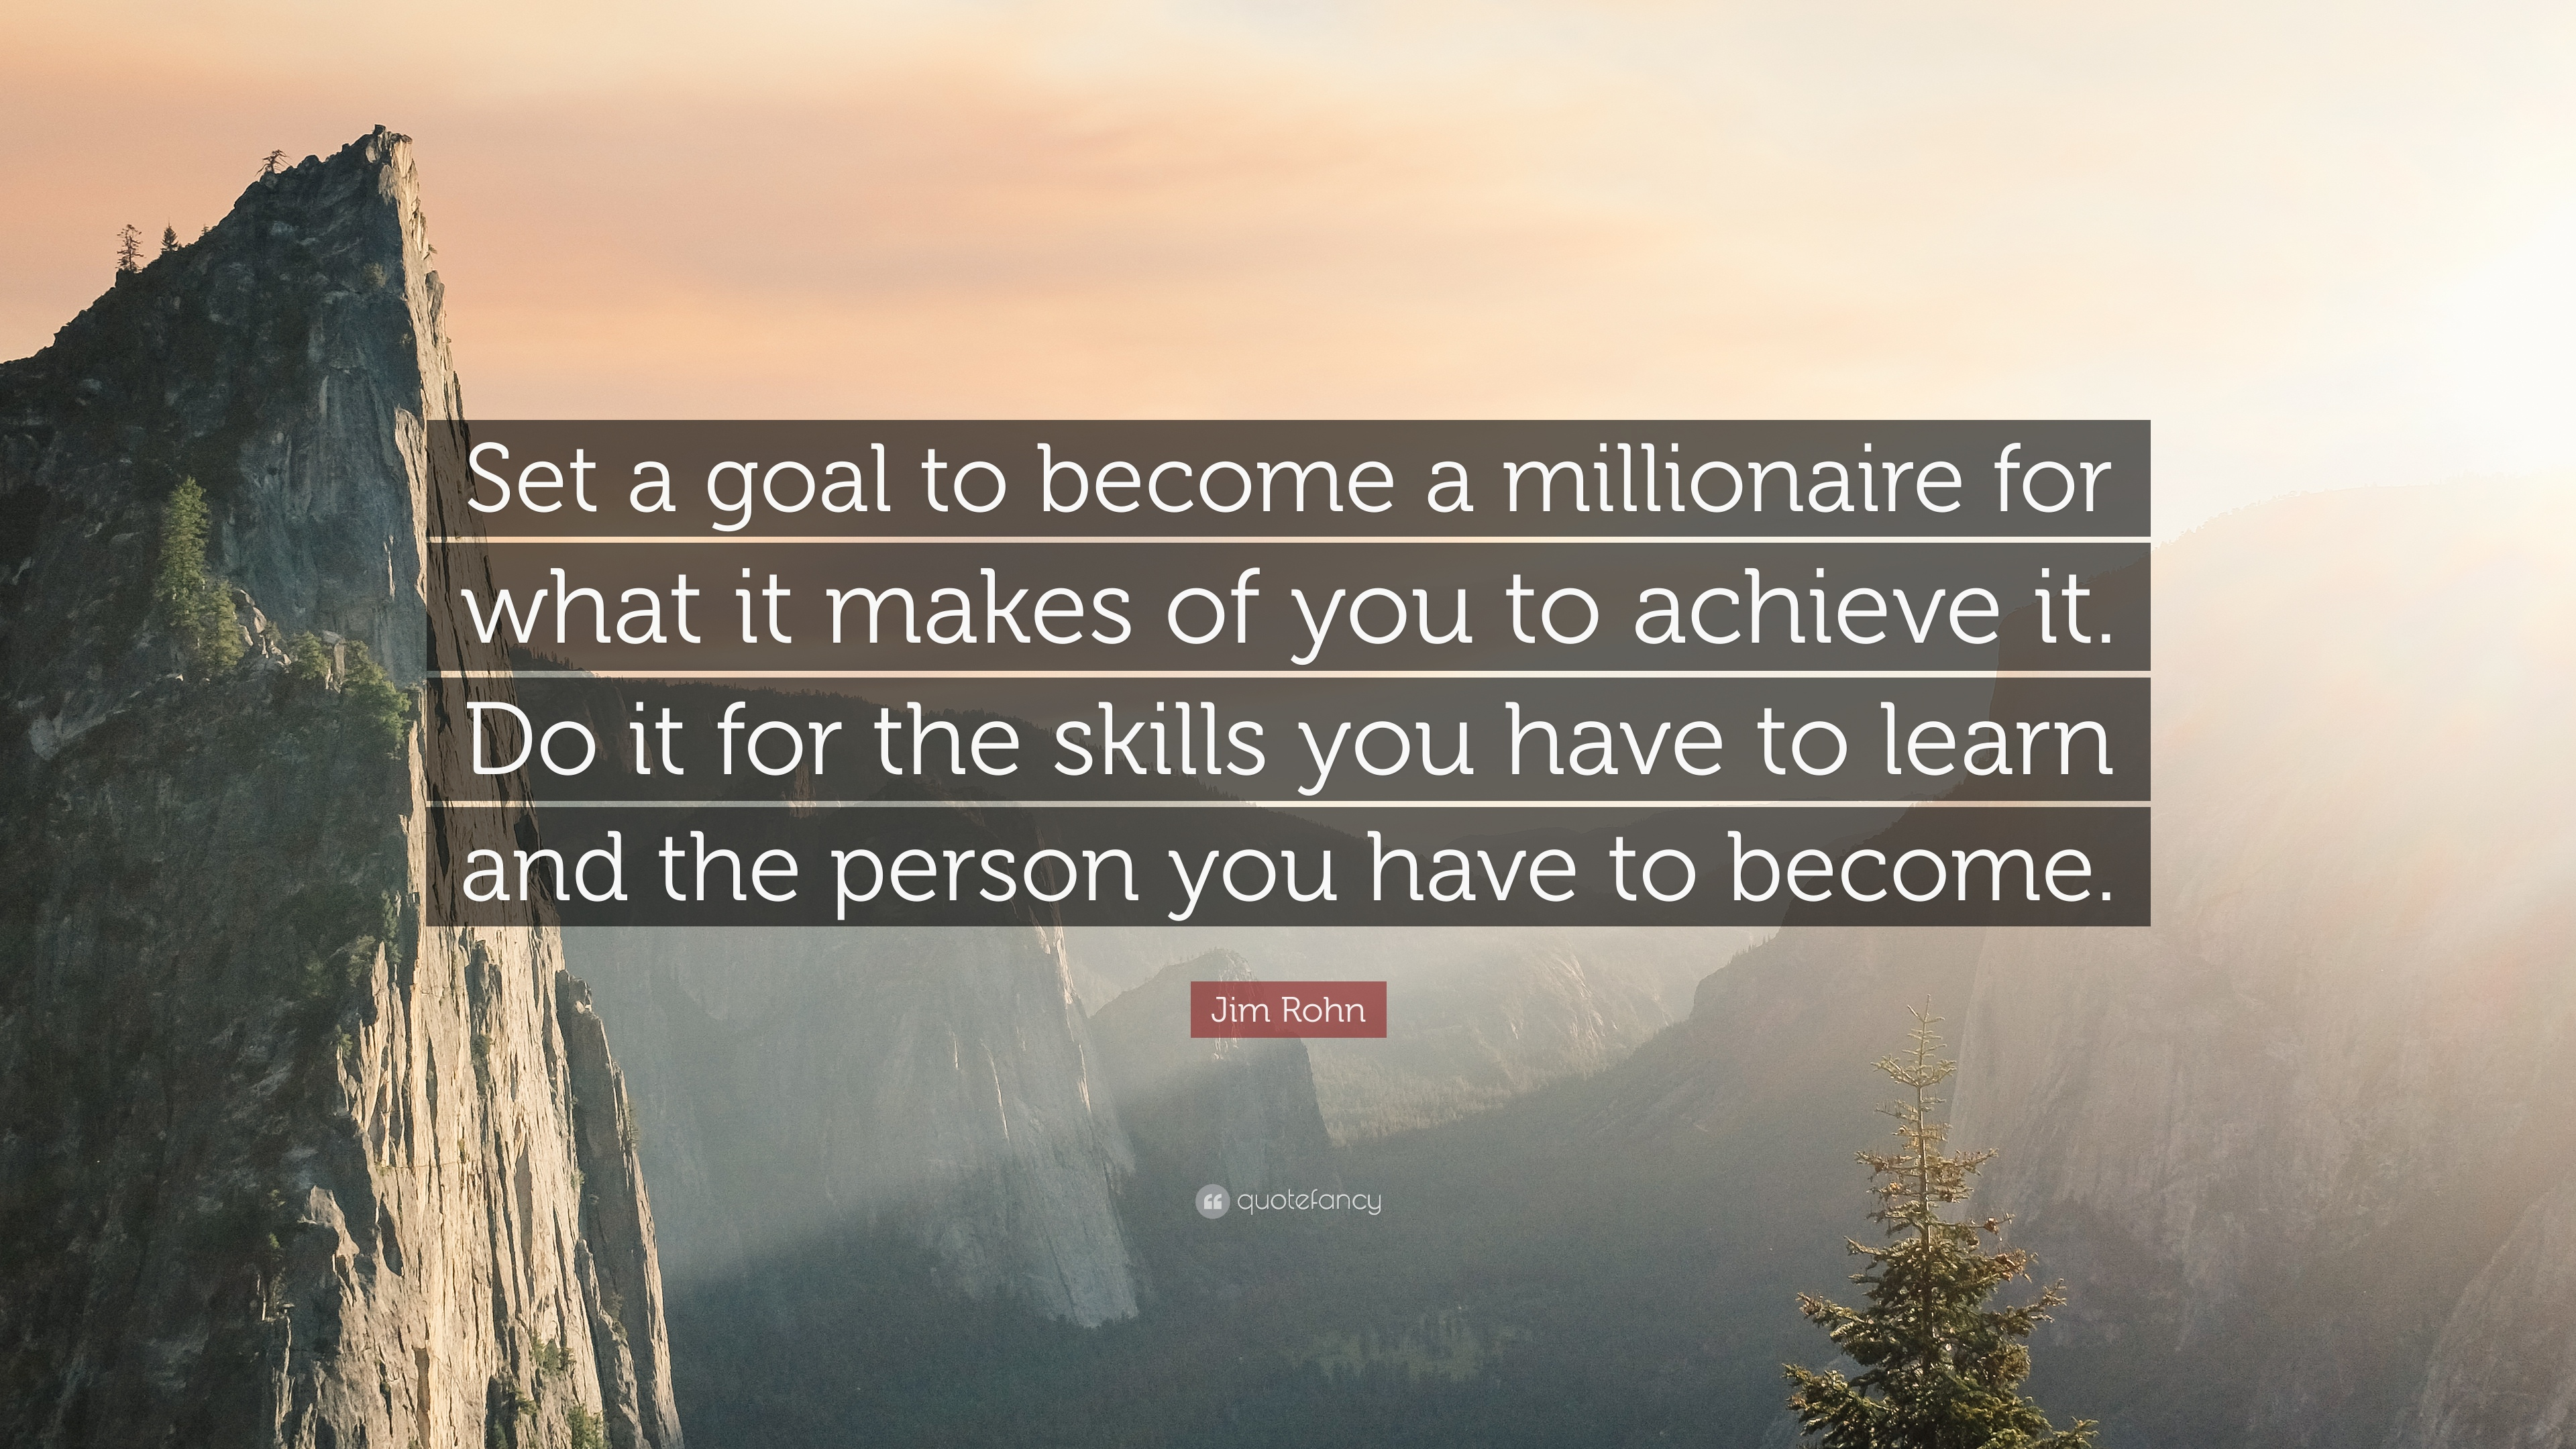 jim rohn quote set a goal to become a millionaire for what it jim rohn quote set a goal to become a millionaire for what it makes